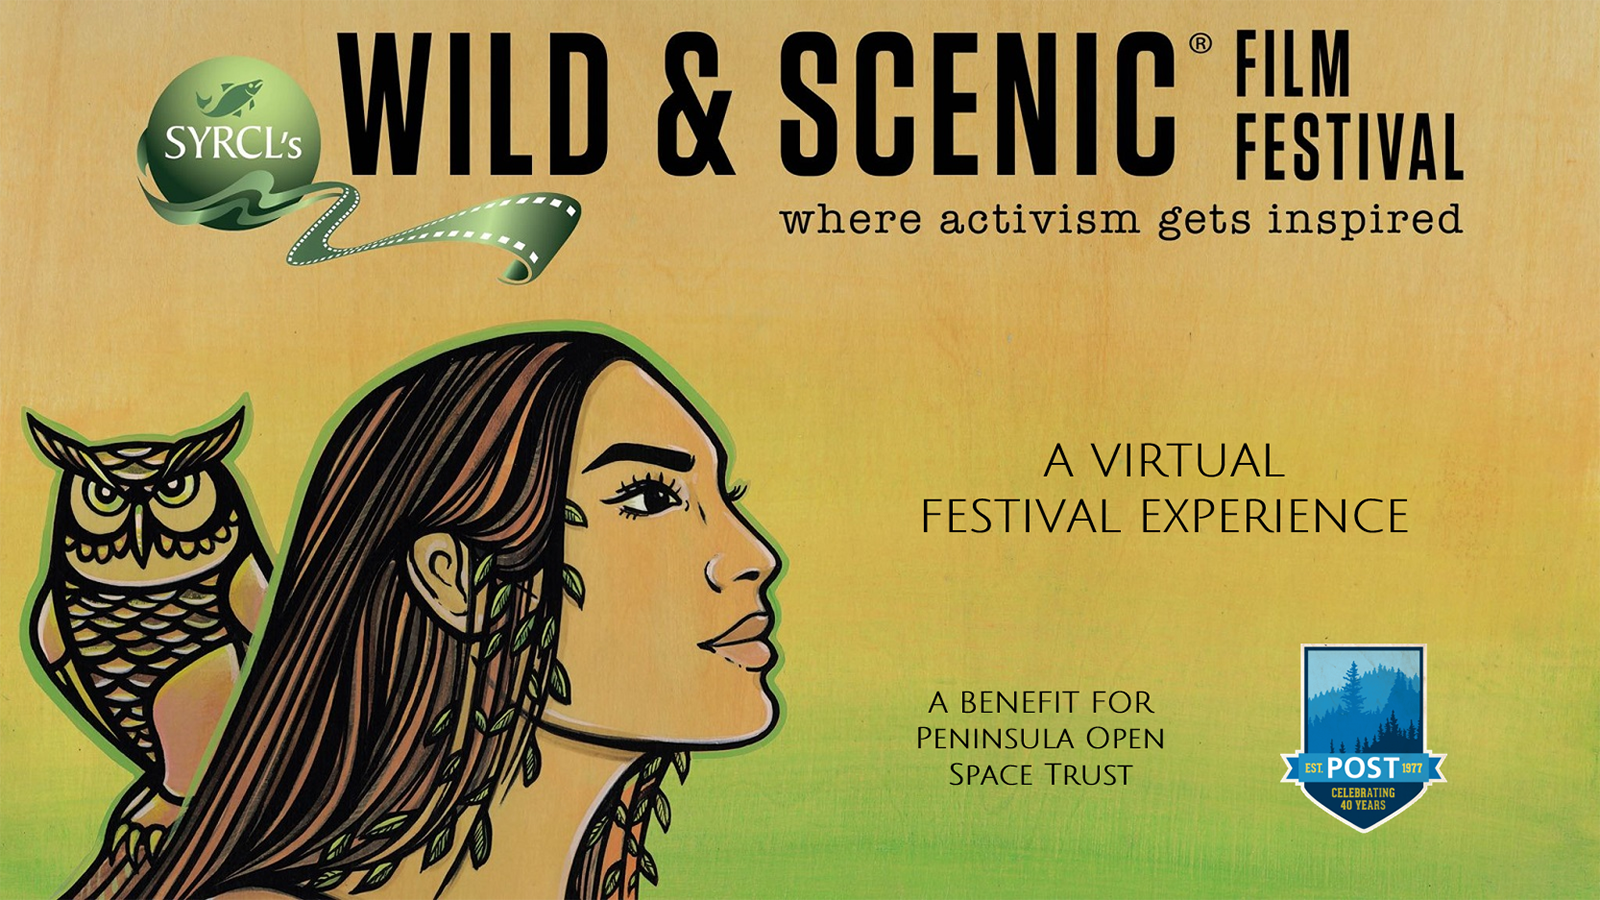 Peninsula Open Space Trust Presents SYRCL's Wild & Scenic Film Festival On Tour